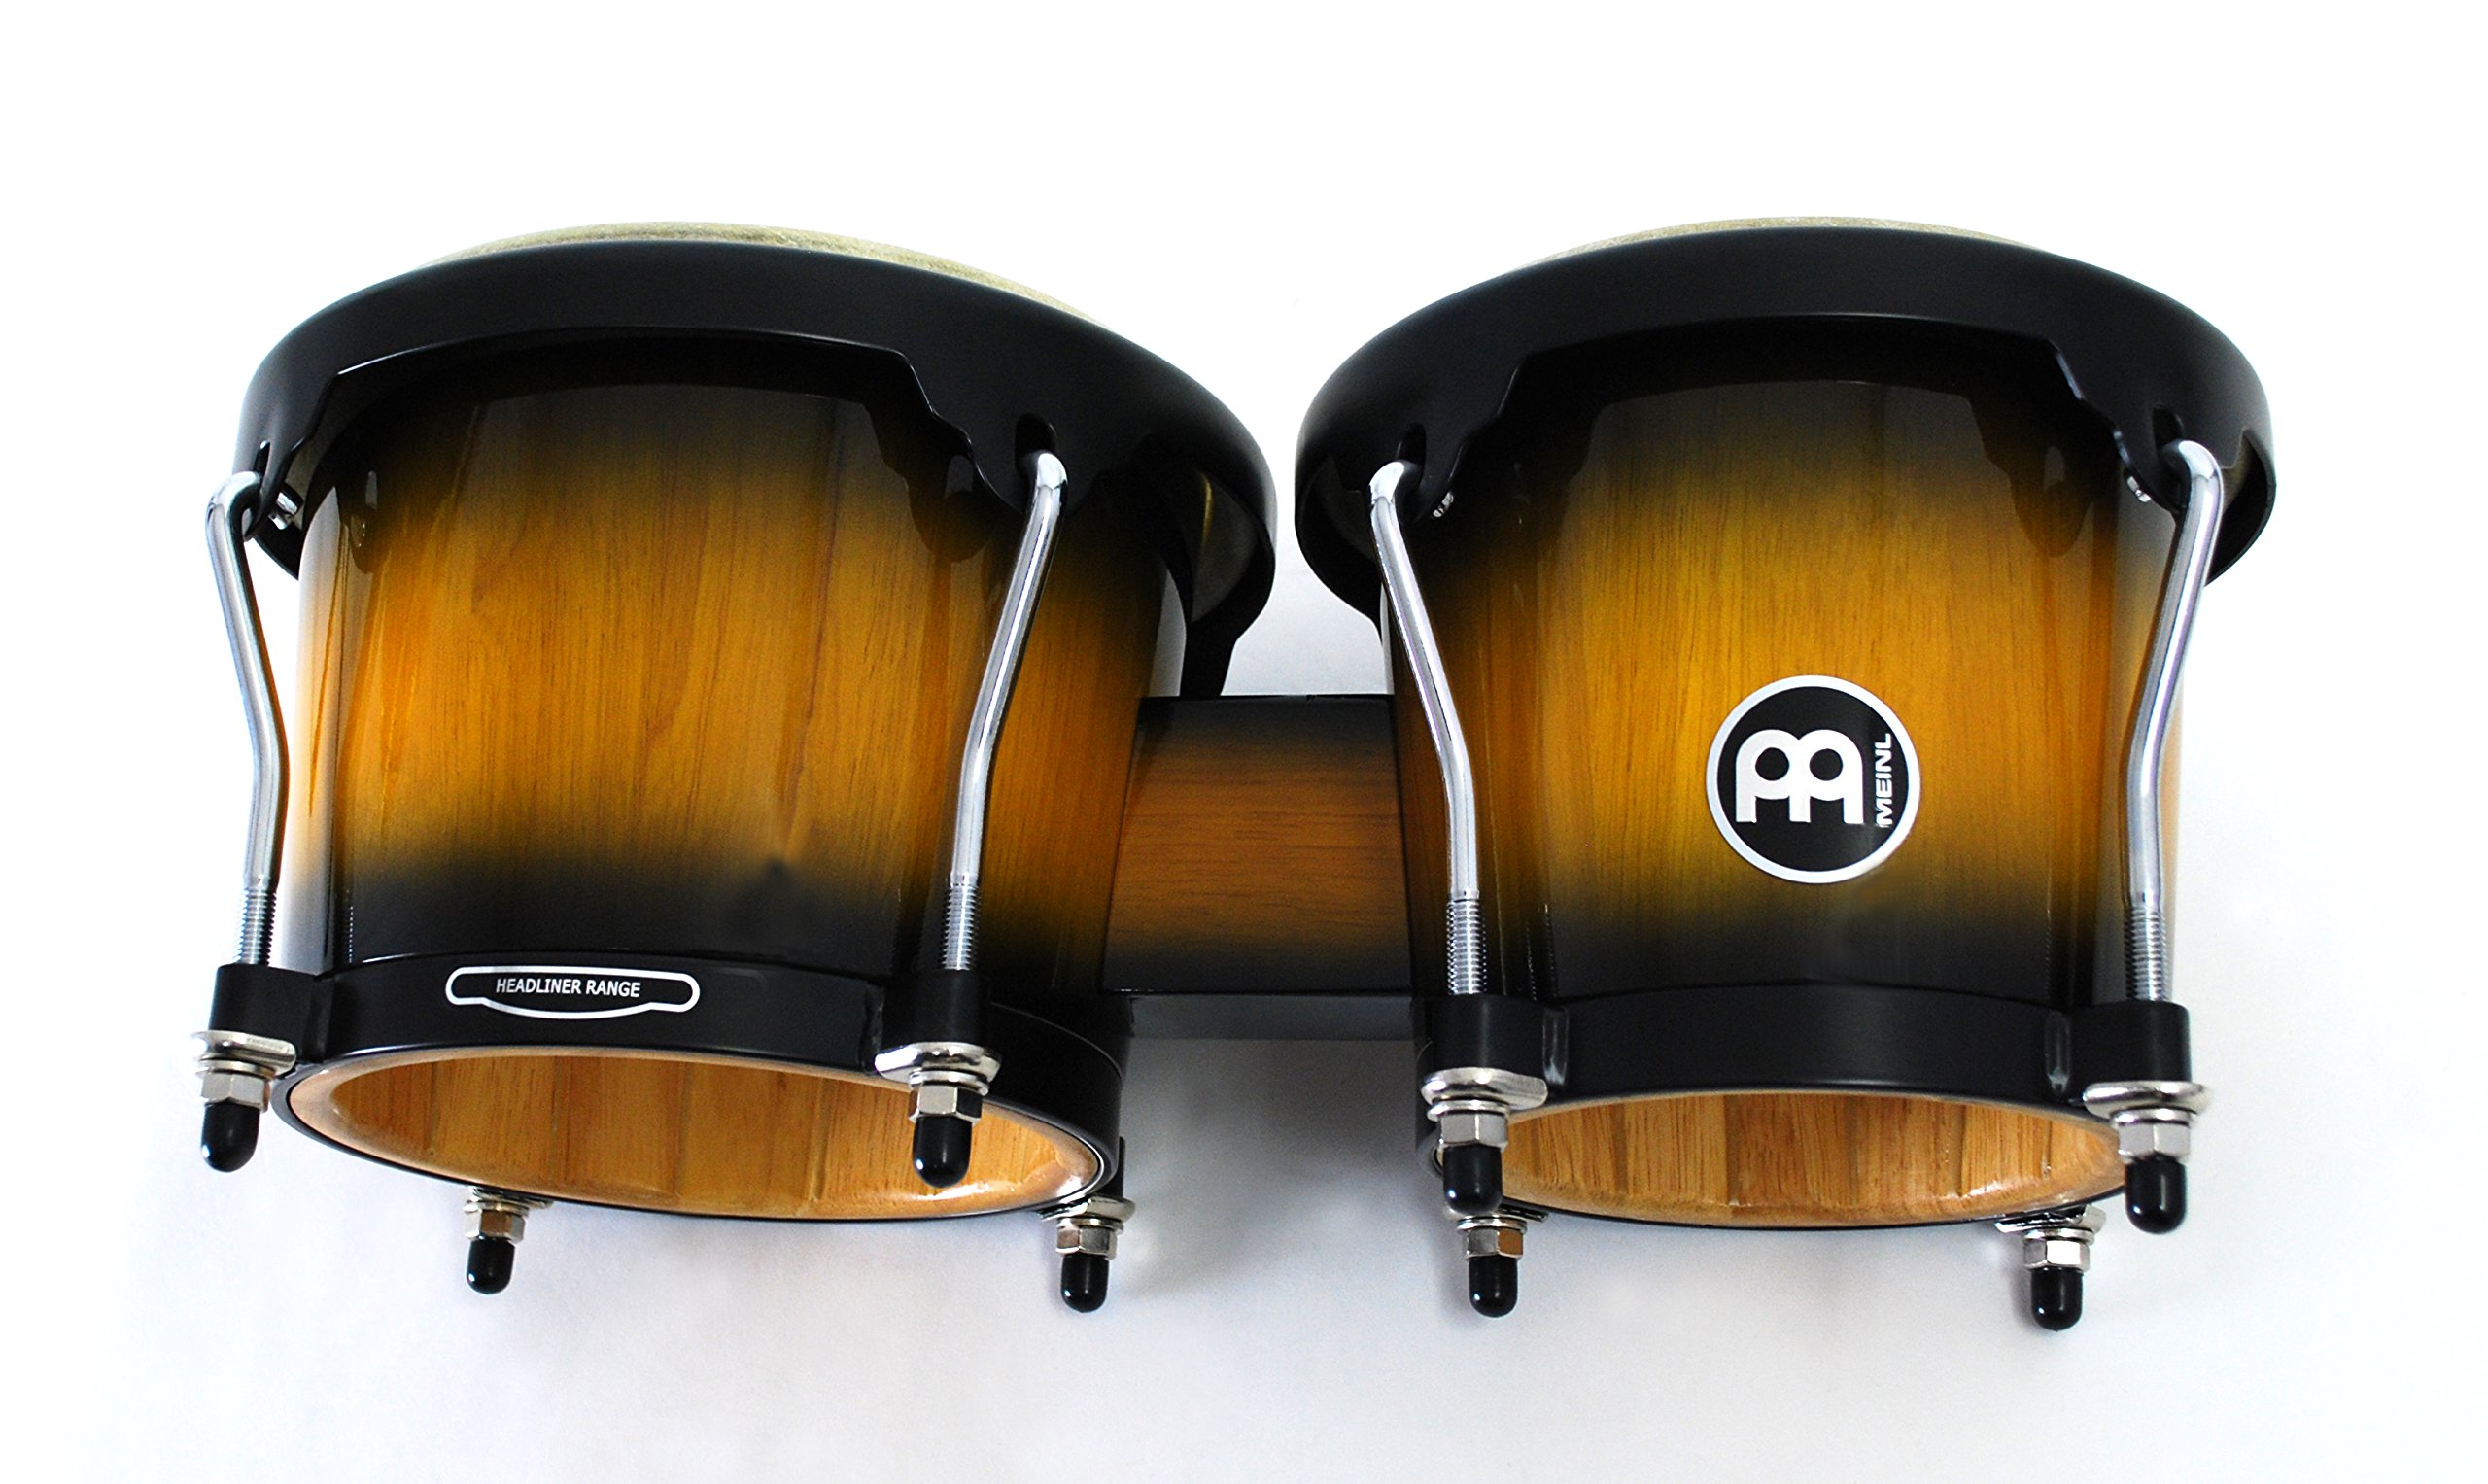 Meinl Percussion Bongos With Hardwood Shells - NOT MADE IN CHINA - Vintage Sun burst Finish, Buffalo Skin Heads, 2-YEAR WARRANTY HB100VSB by Meinl Percussion (Image #5)